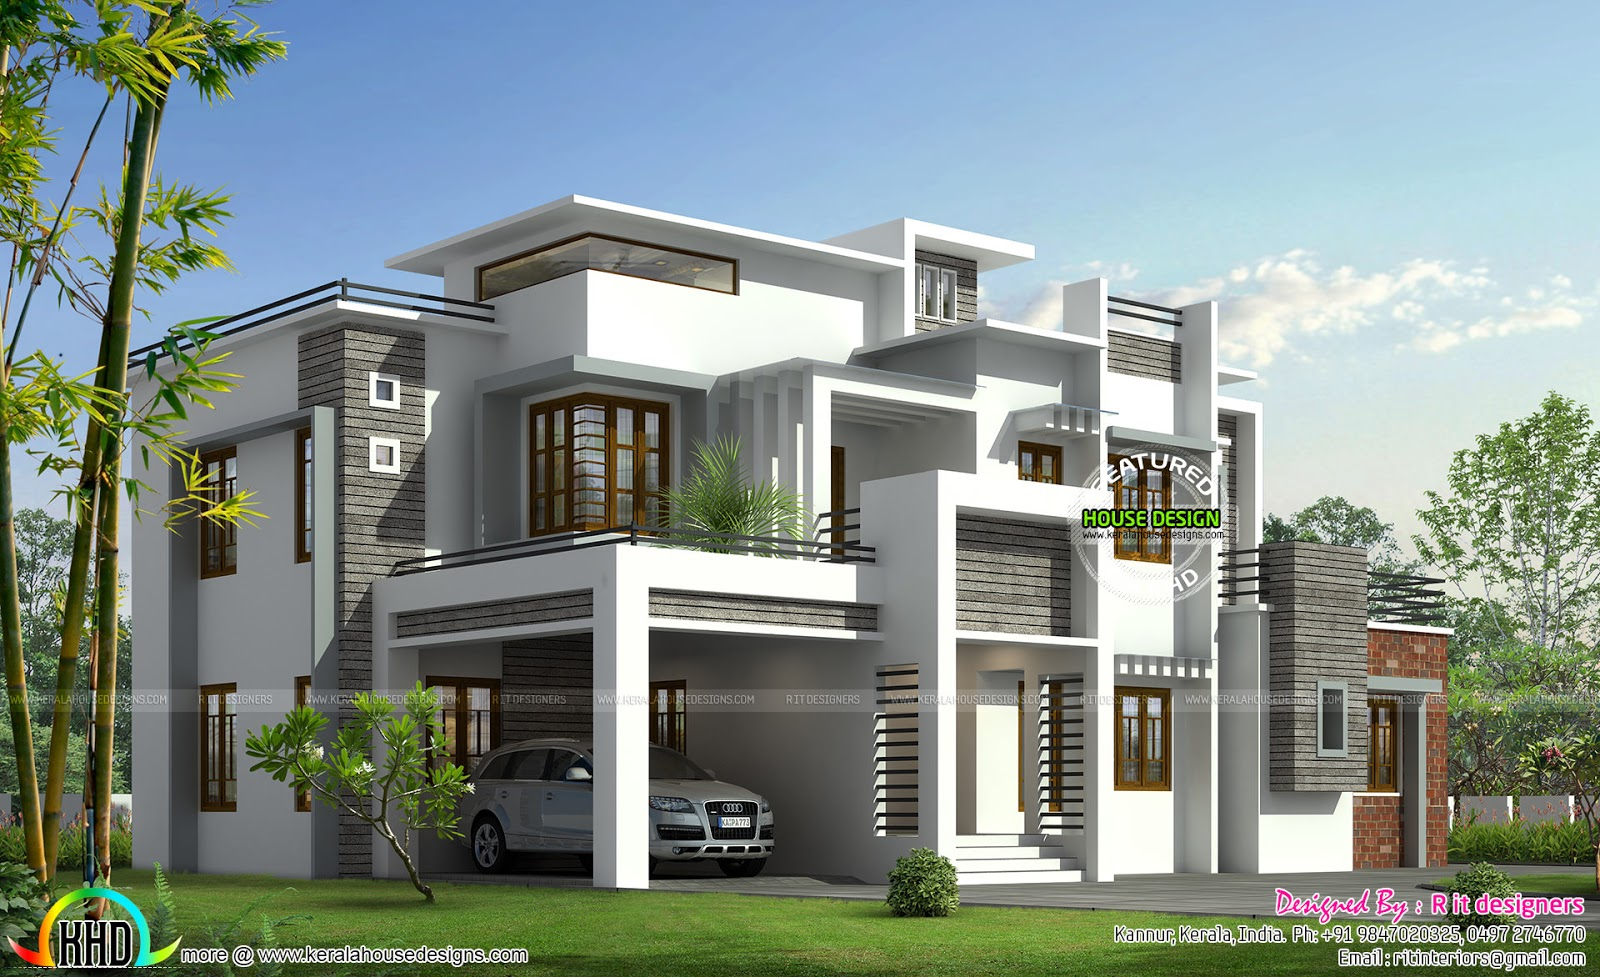 Box Model Contemporary House Kerala Home Design And